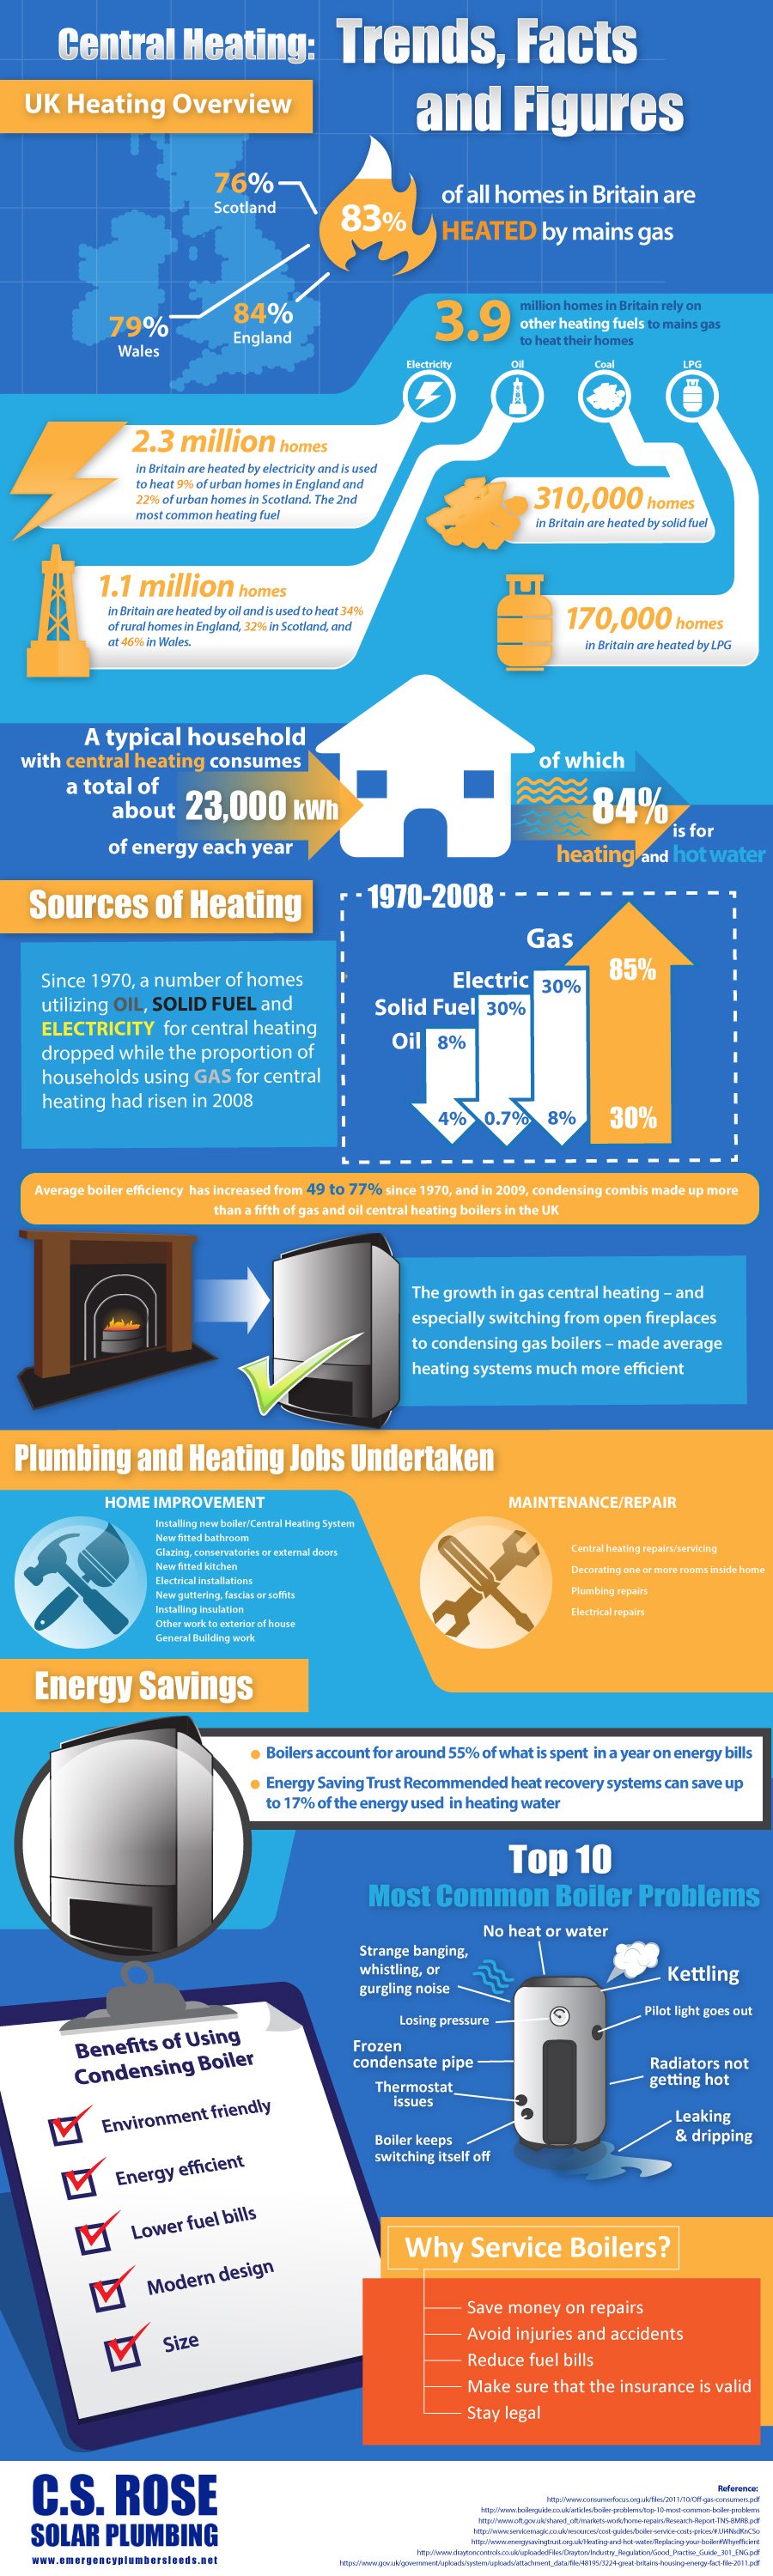 Central Heating: Trends, Facts And Figures [INFOGRAPHIC] #central ...